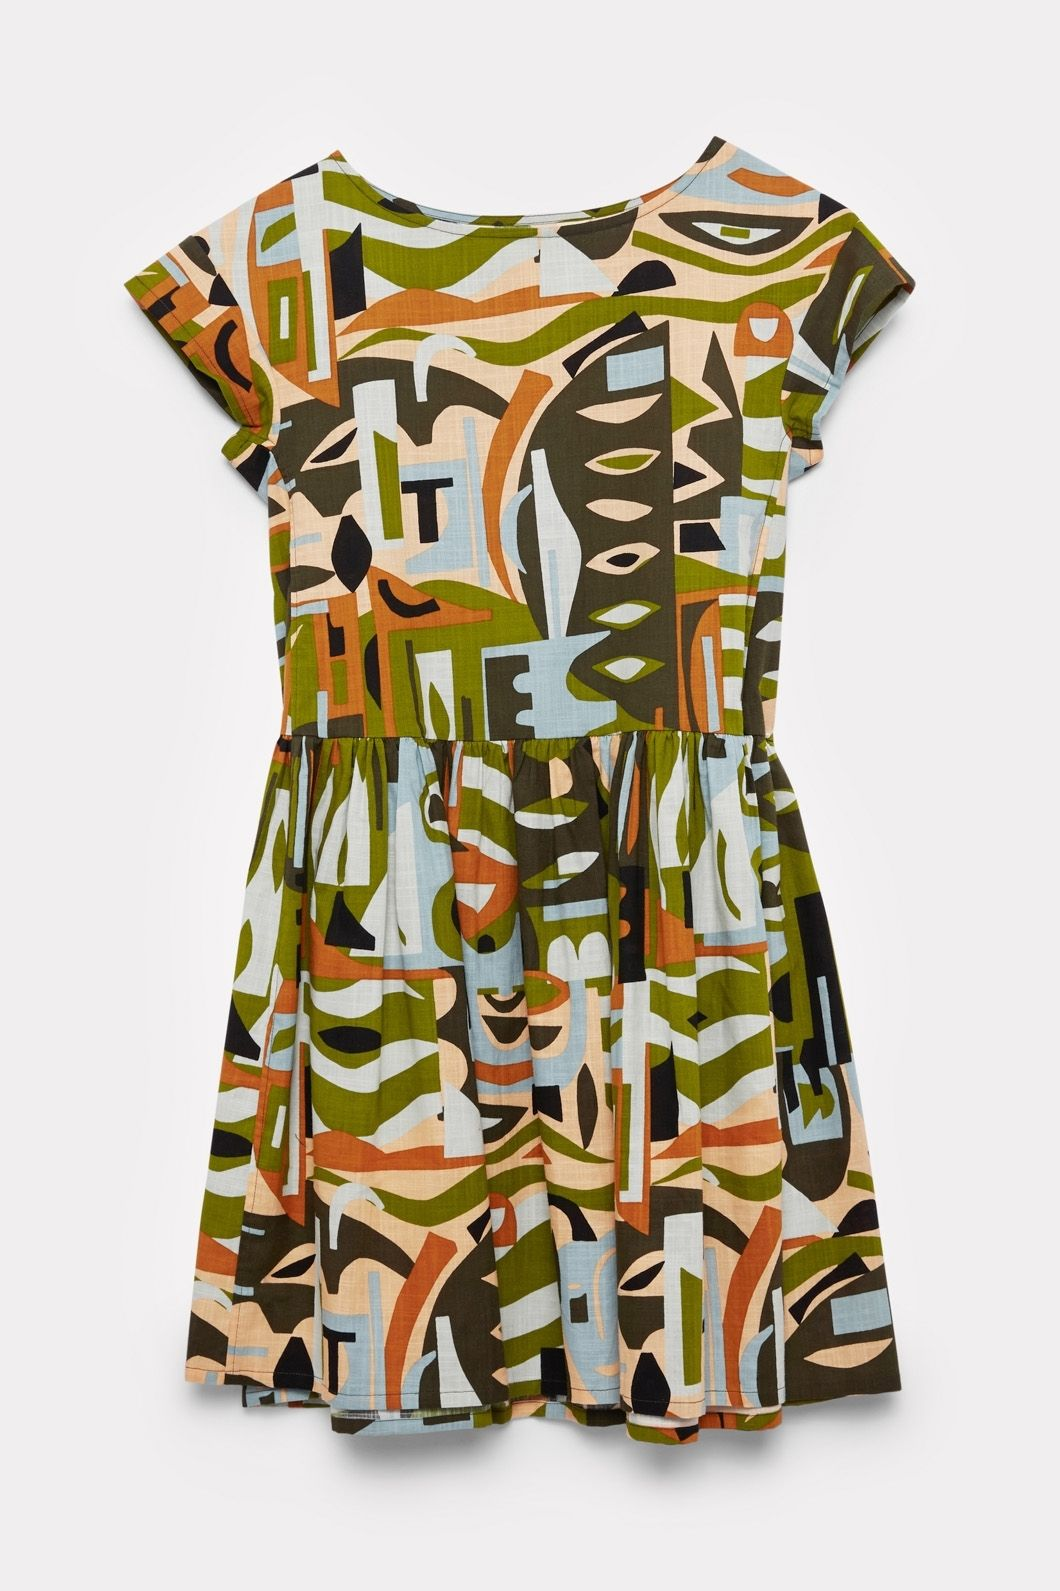 b1c48942a9 Gorman Online    Camo Beach Dress - Claire Johnson + Gorman